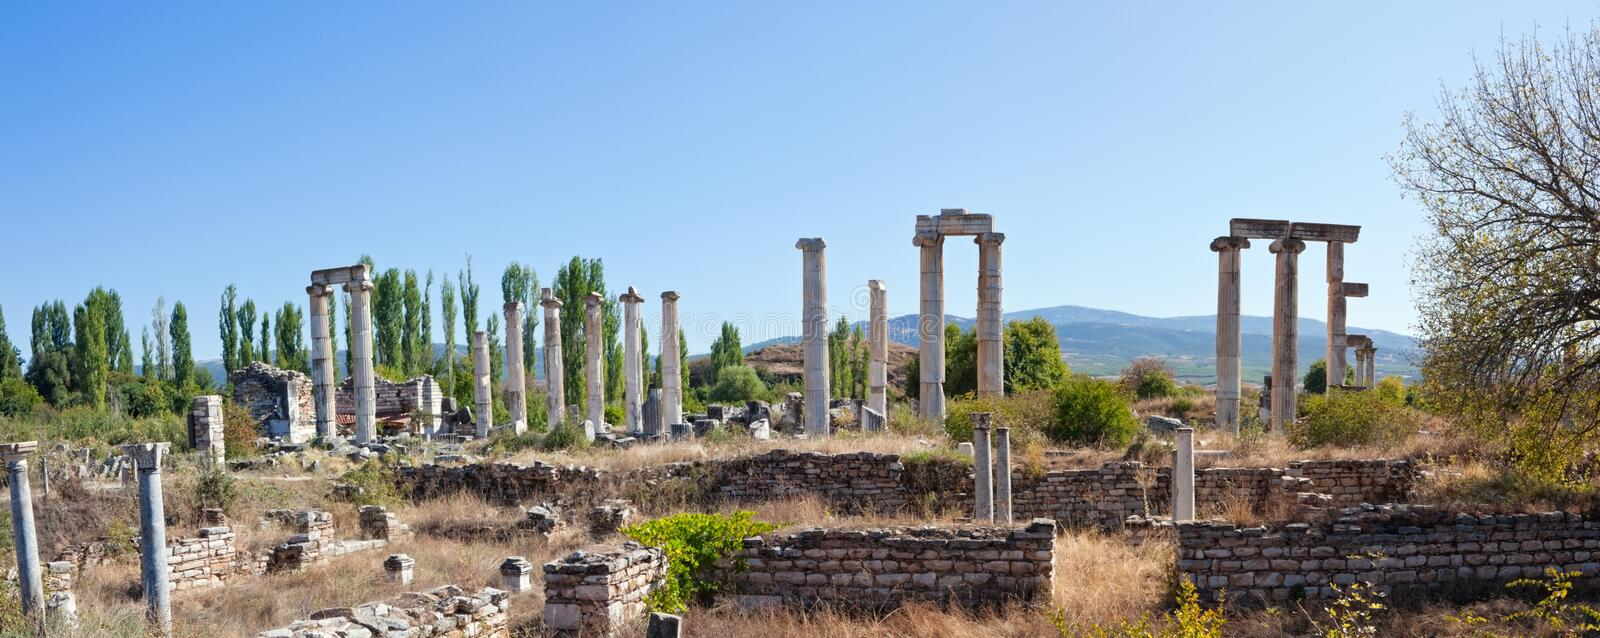 Download Temple of Aphrodite stock image. Image of architecture - 22549437